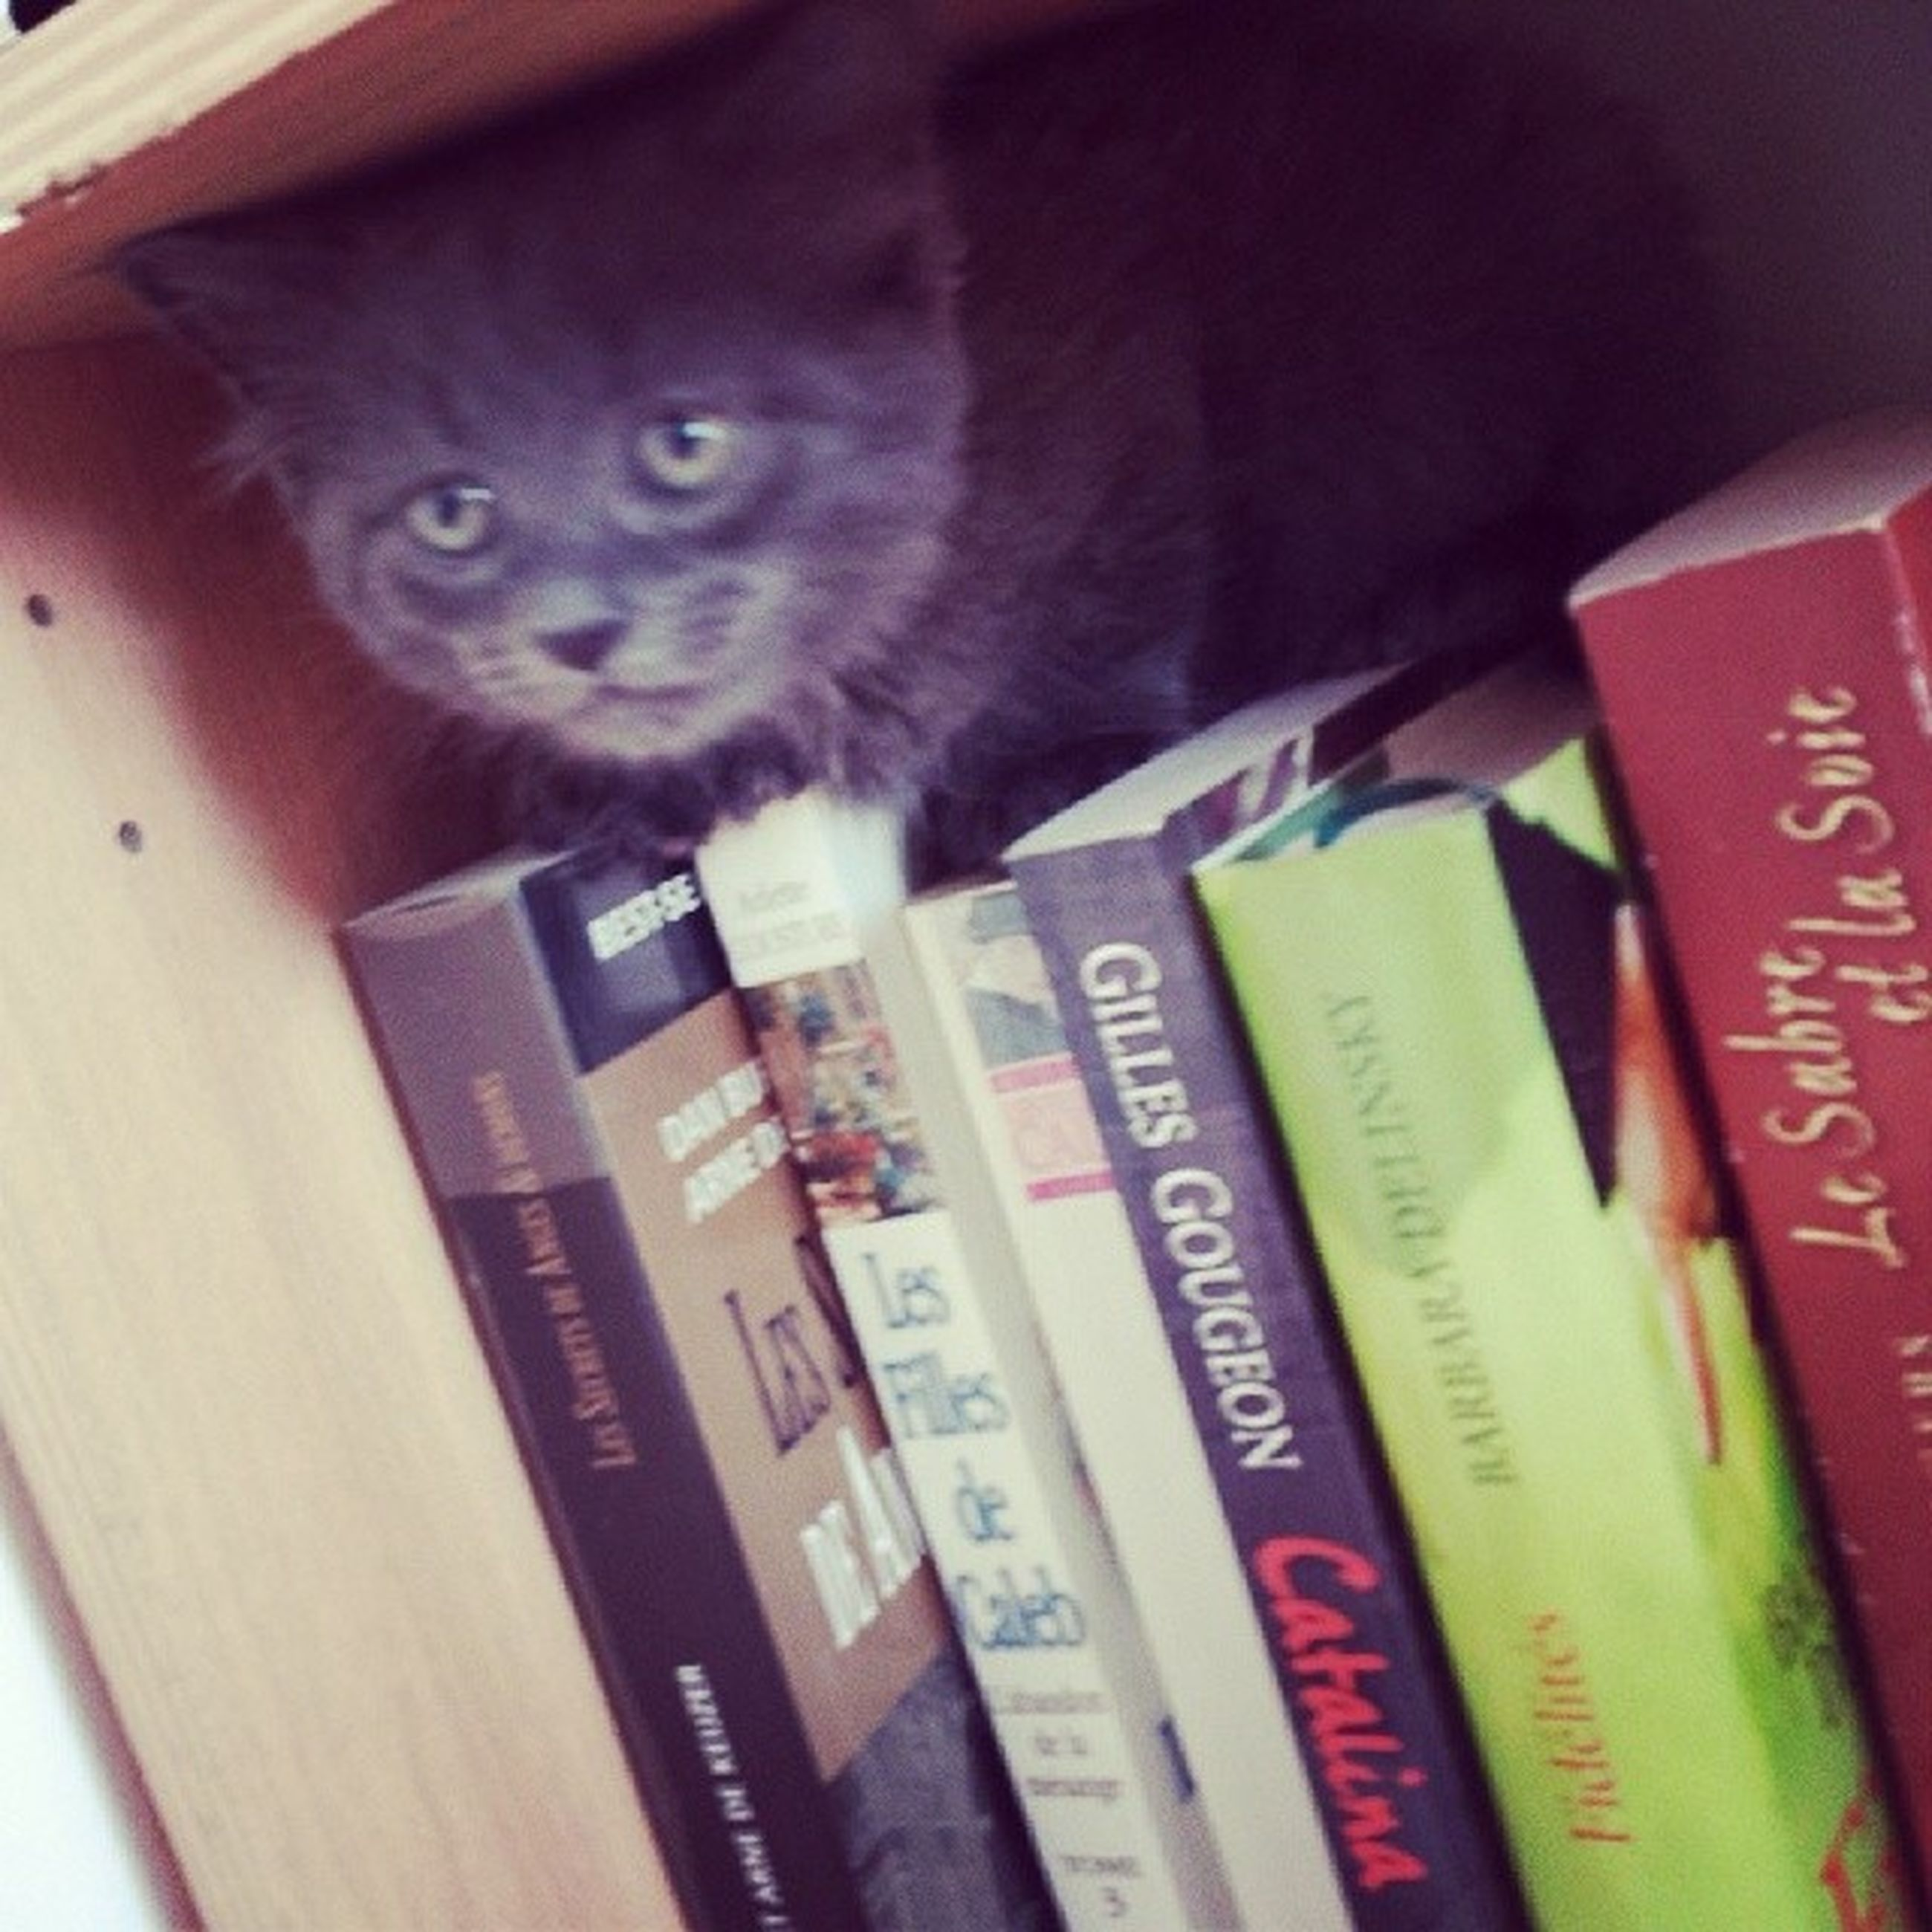 indoors, text, book, education, communication, close-up, western script, paper, high angle view, table, still life, wood - material, pen, variation, no people, shelf, selective focus, domestic cat, literature, choice